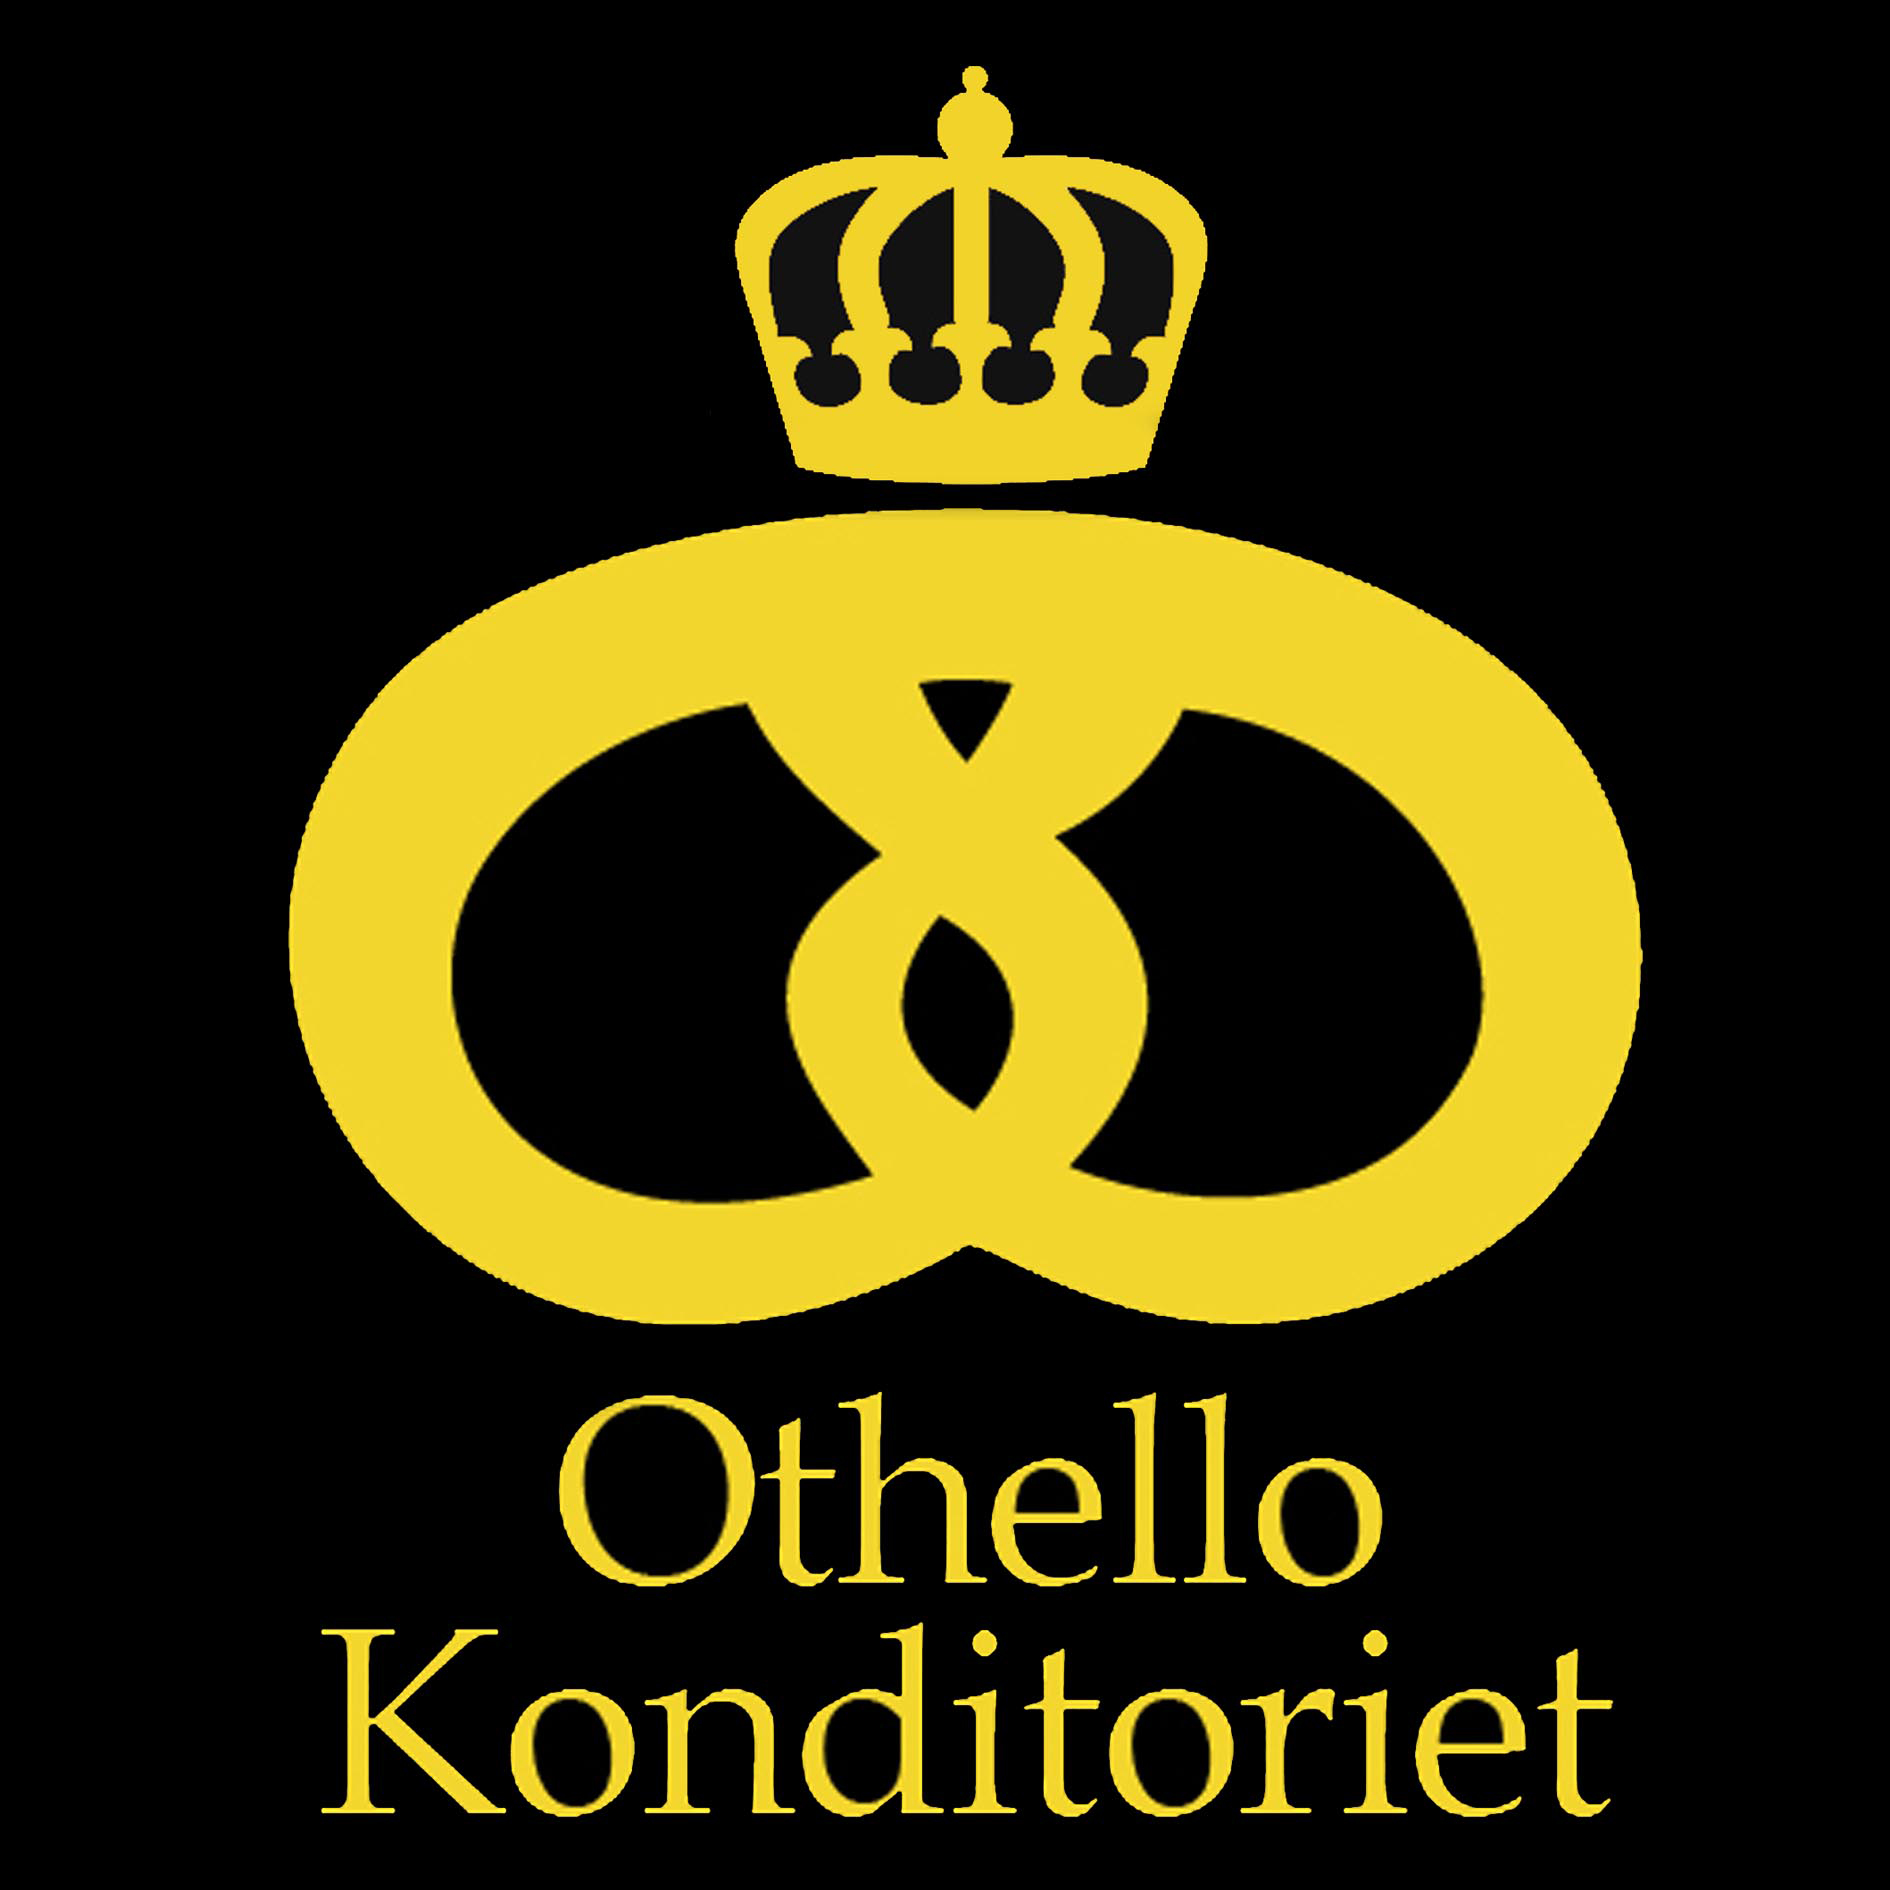 Othello Konditoriet